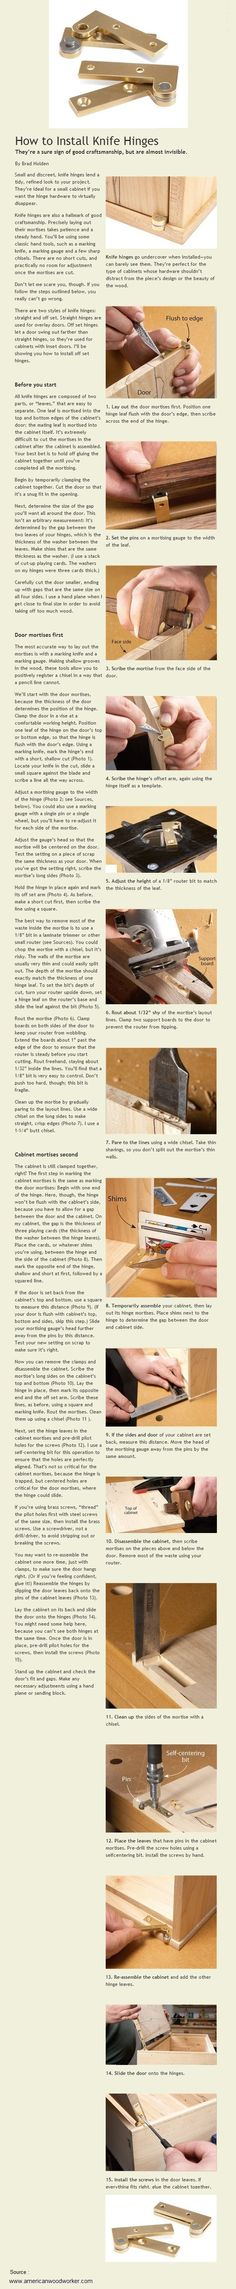 How to Install Knife Hinges Easy Woodworking Projects, Woodworking Jigs, Carpentry, Handyman Projects, Wood Shop Projects, Wood Joints, Got Wood, Hardware, Shop Storage